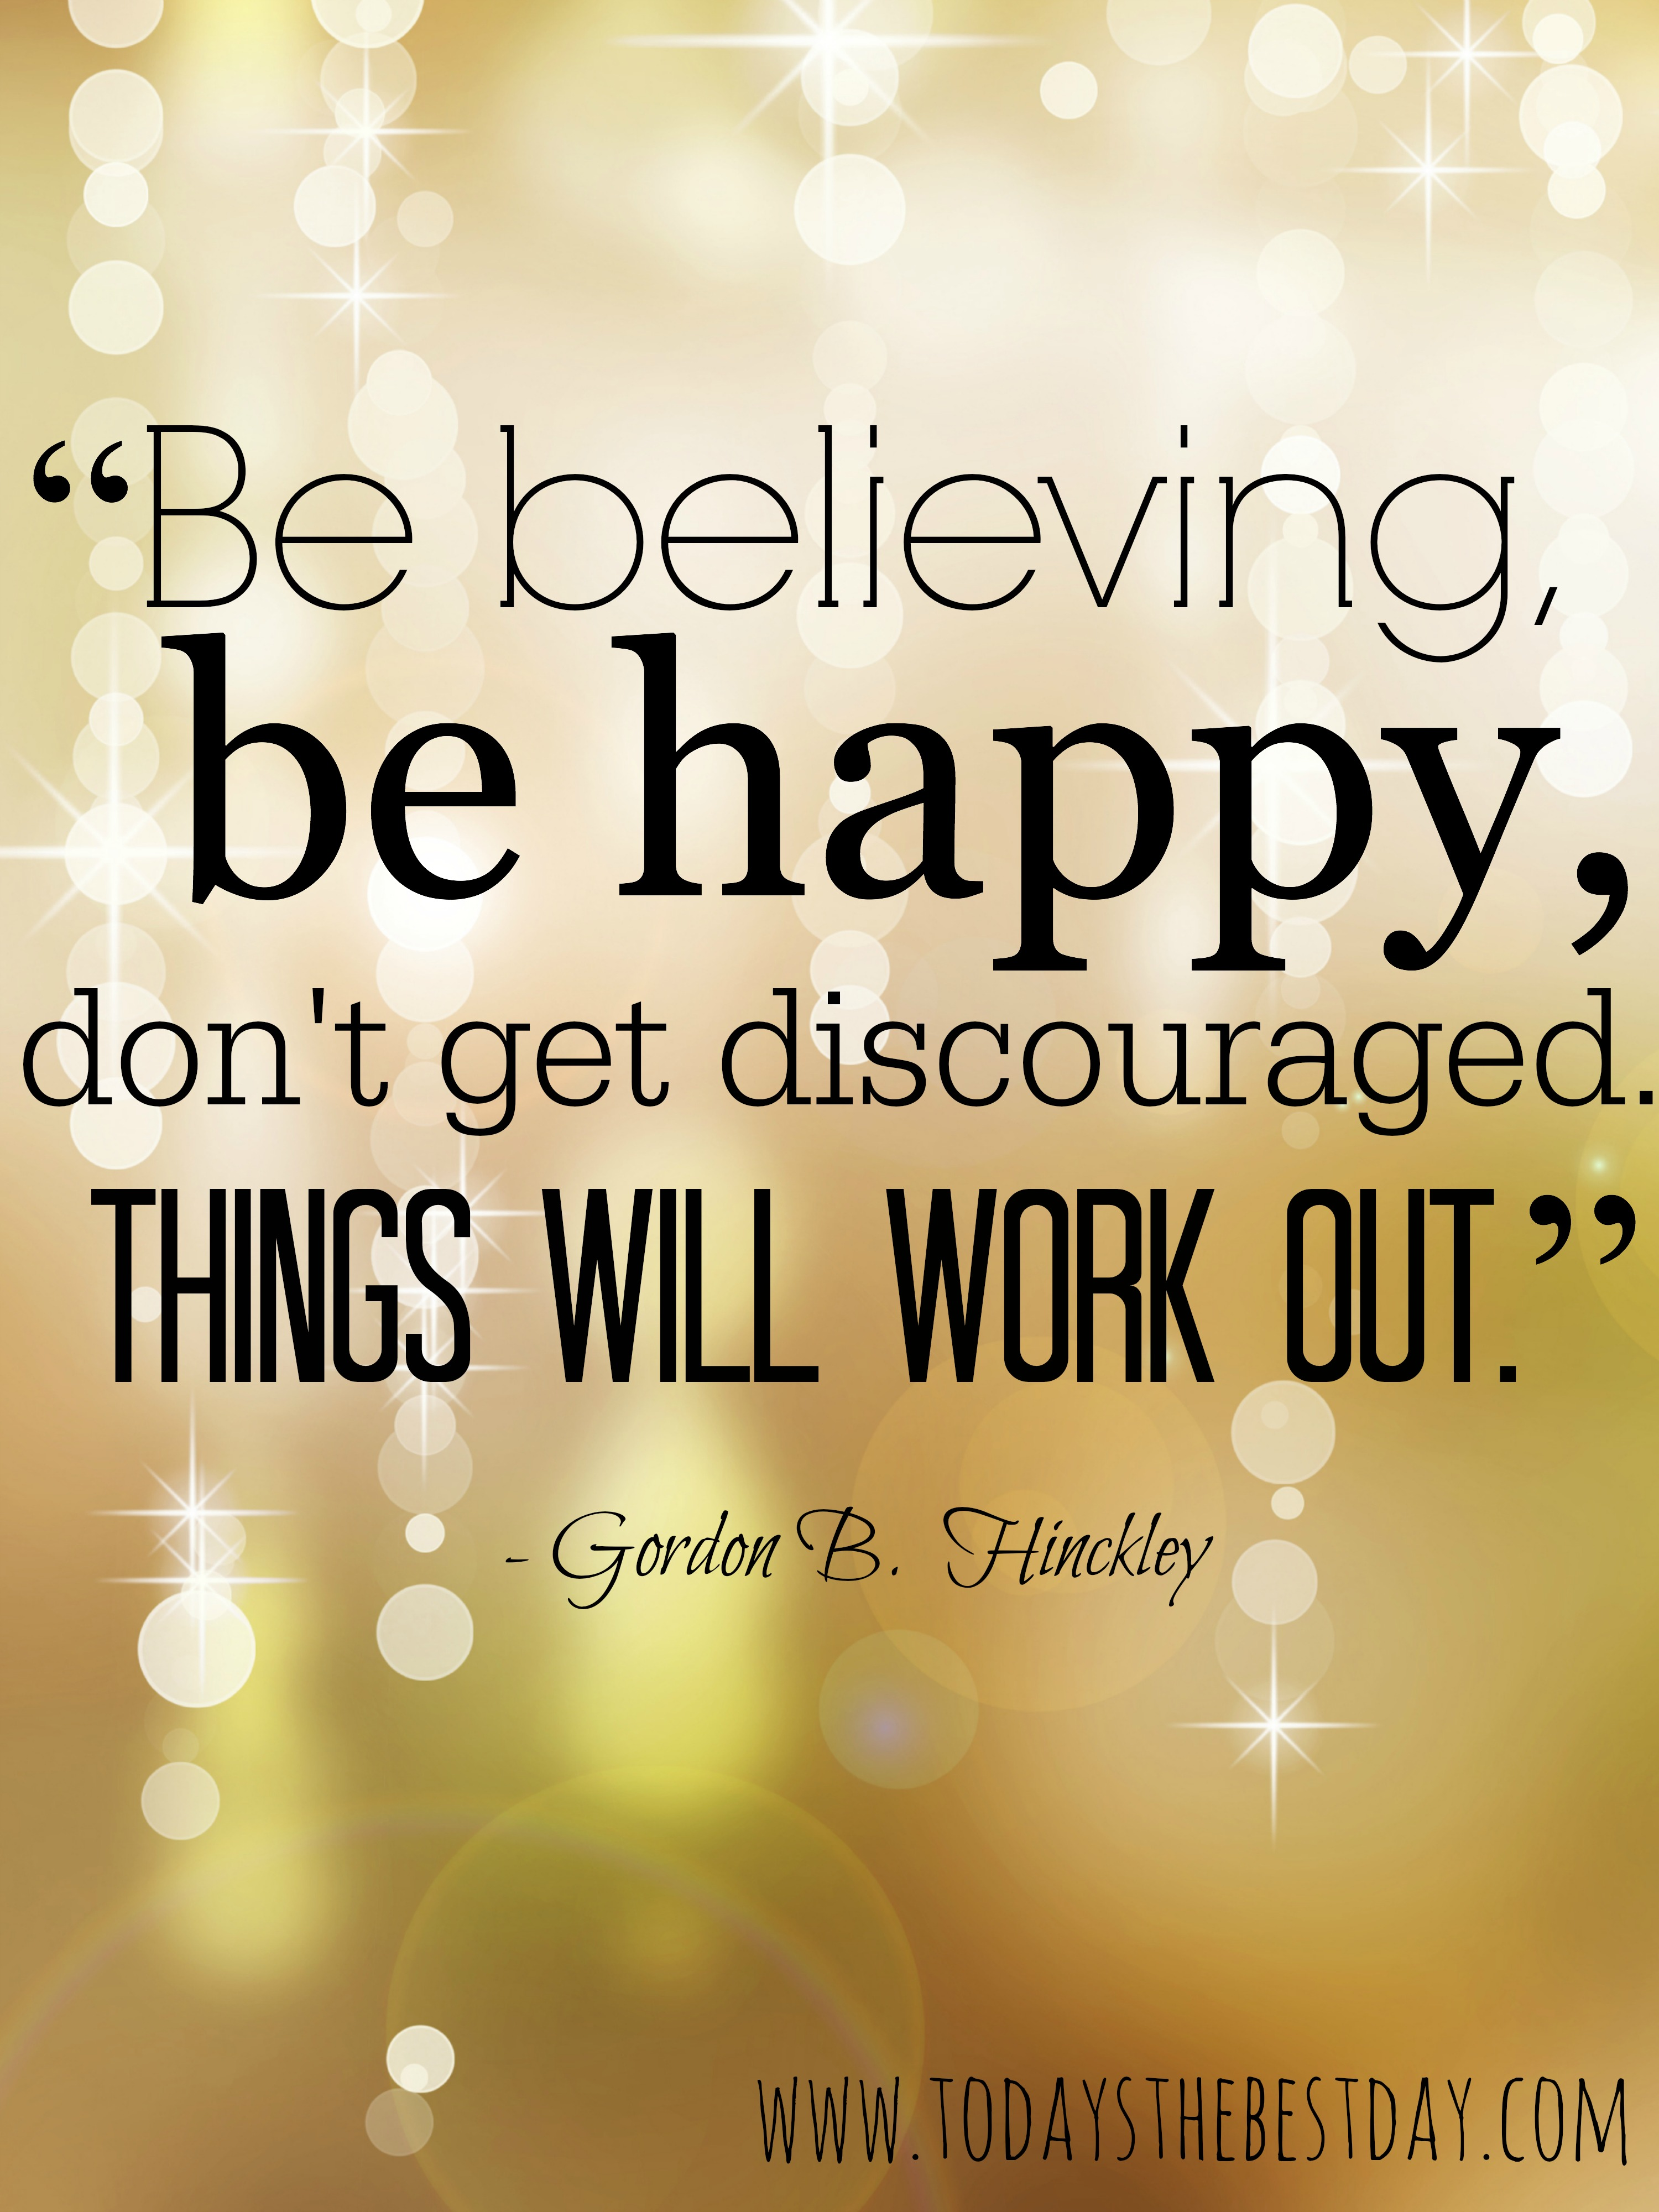 Gordon B Hinckley Quotes Extraordinary Happiness Through Trials  Today's The Best Day